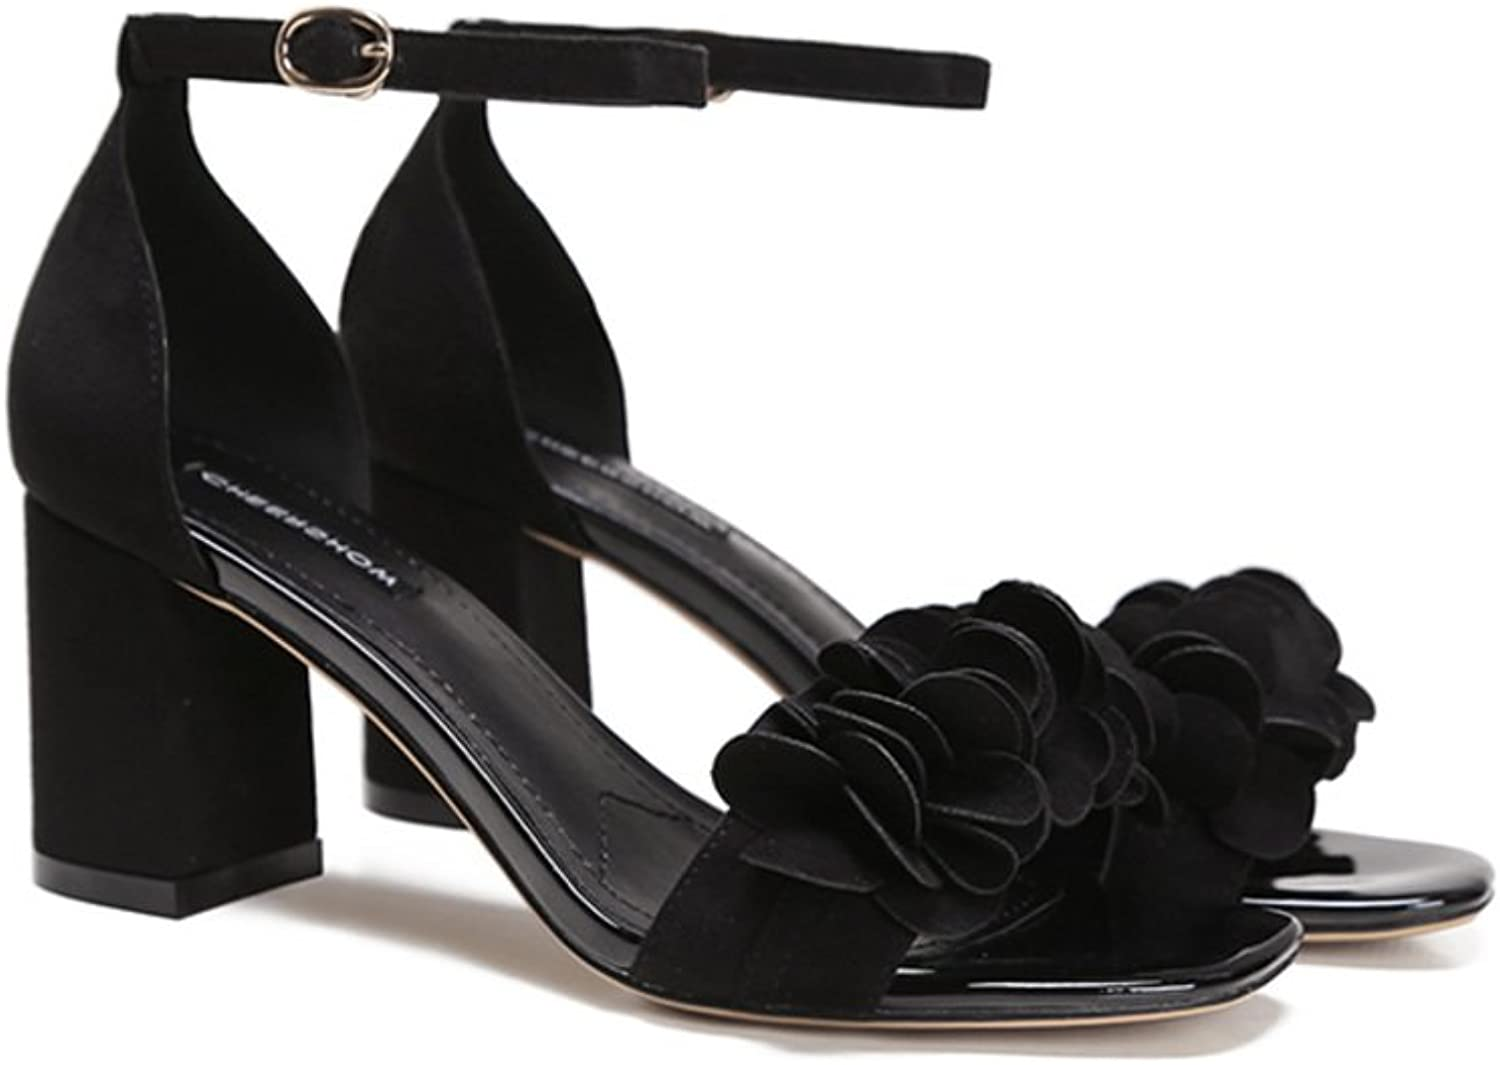 Buckle Chunky Heels High Heels Open-toe Sandals With A Solid color-Black Foot length=21.8CM(8.6Inch)